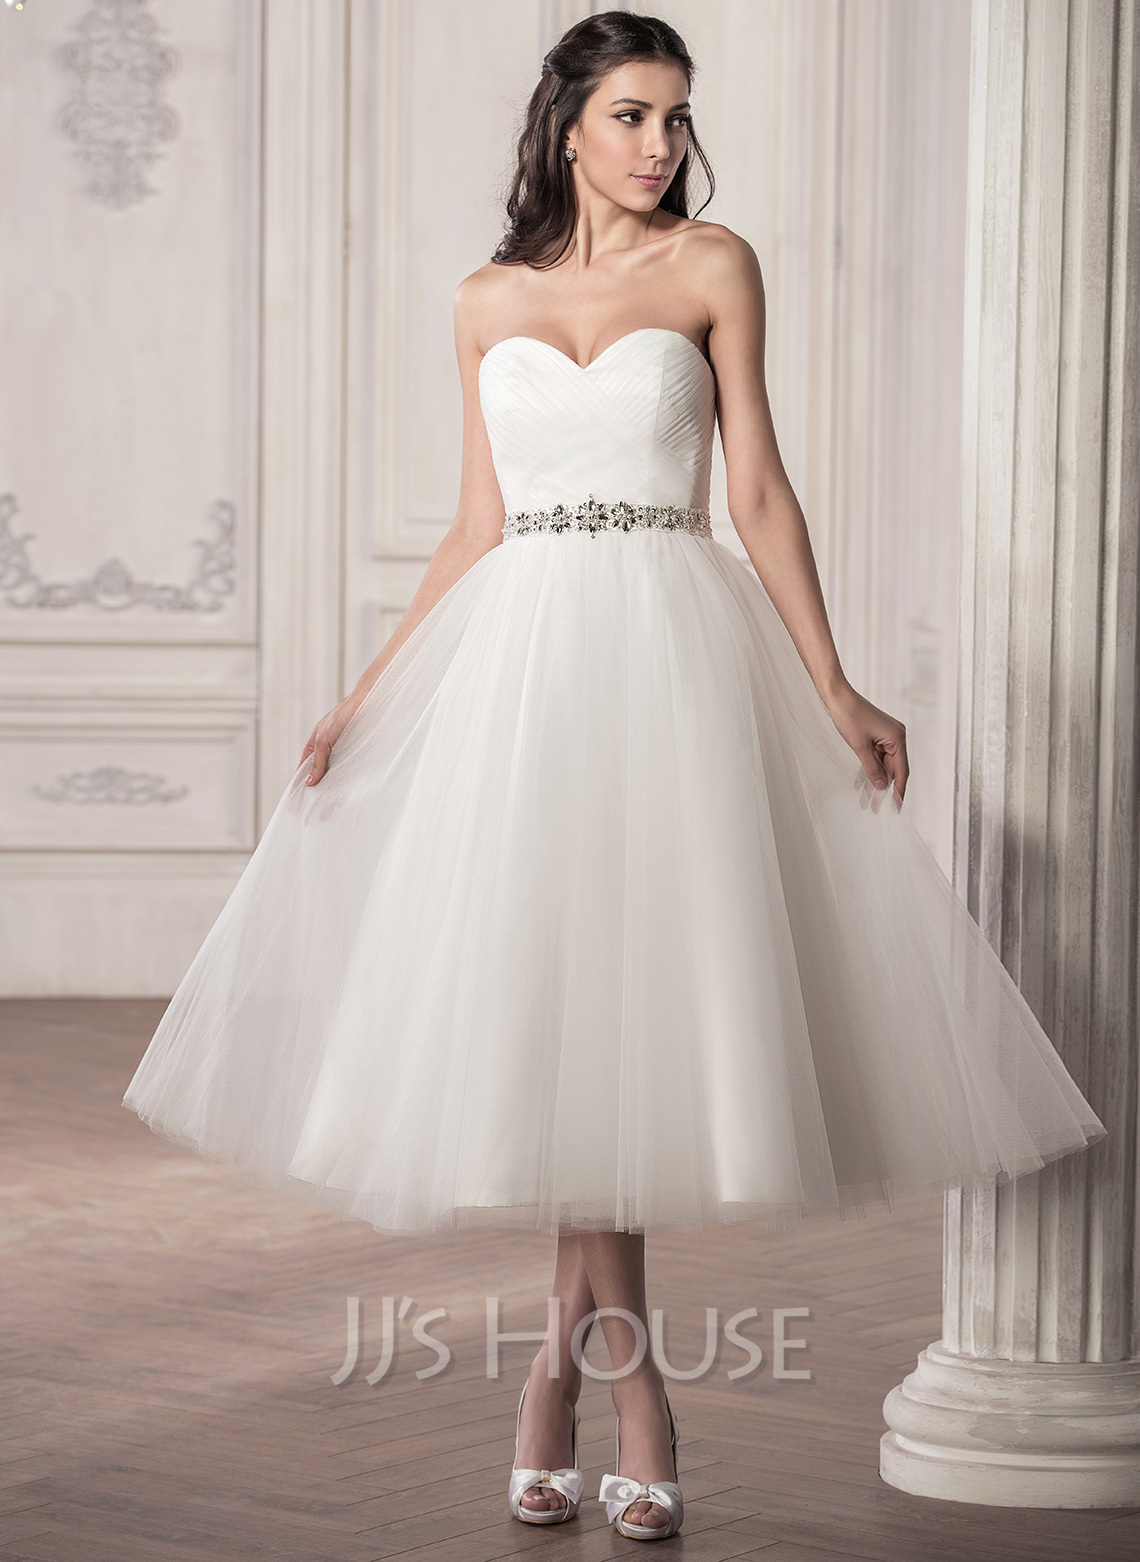 2e639c4ecb843 A-Line/Princess Sweetheart Tea-Length Tulle Wedding Dress With Ruffle  Beading Sequins. Loading zoom